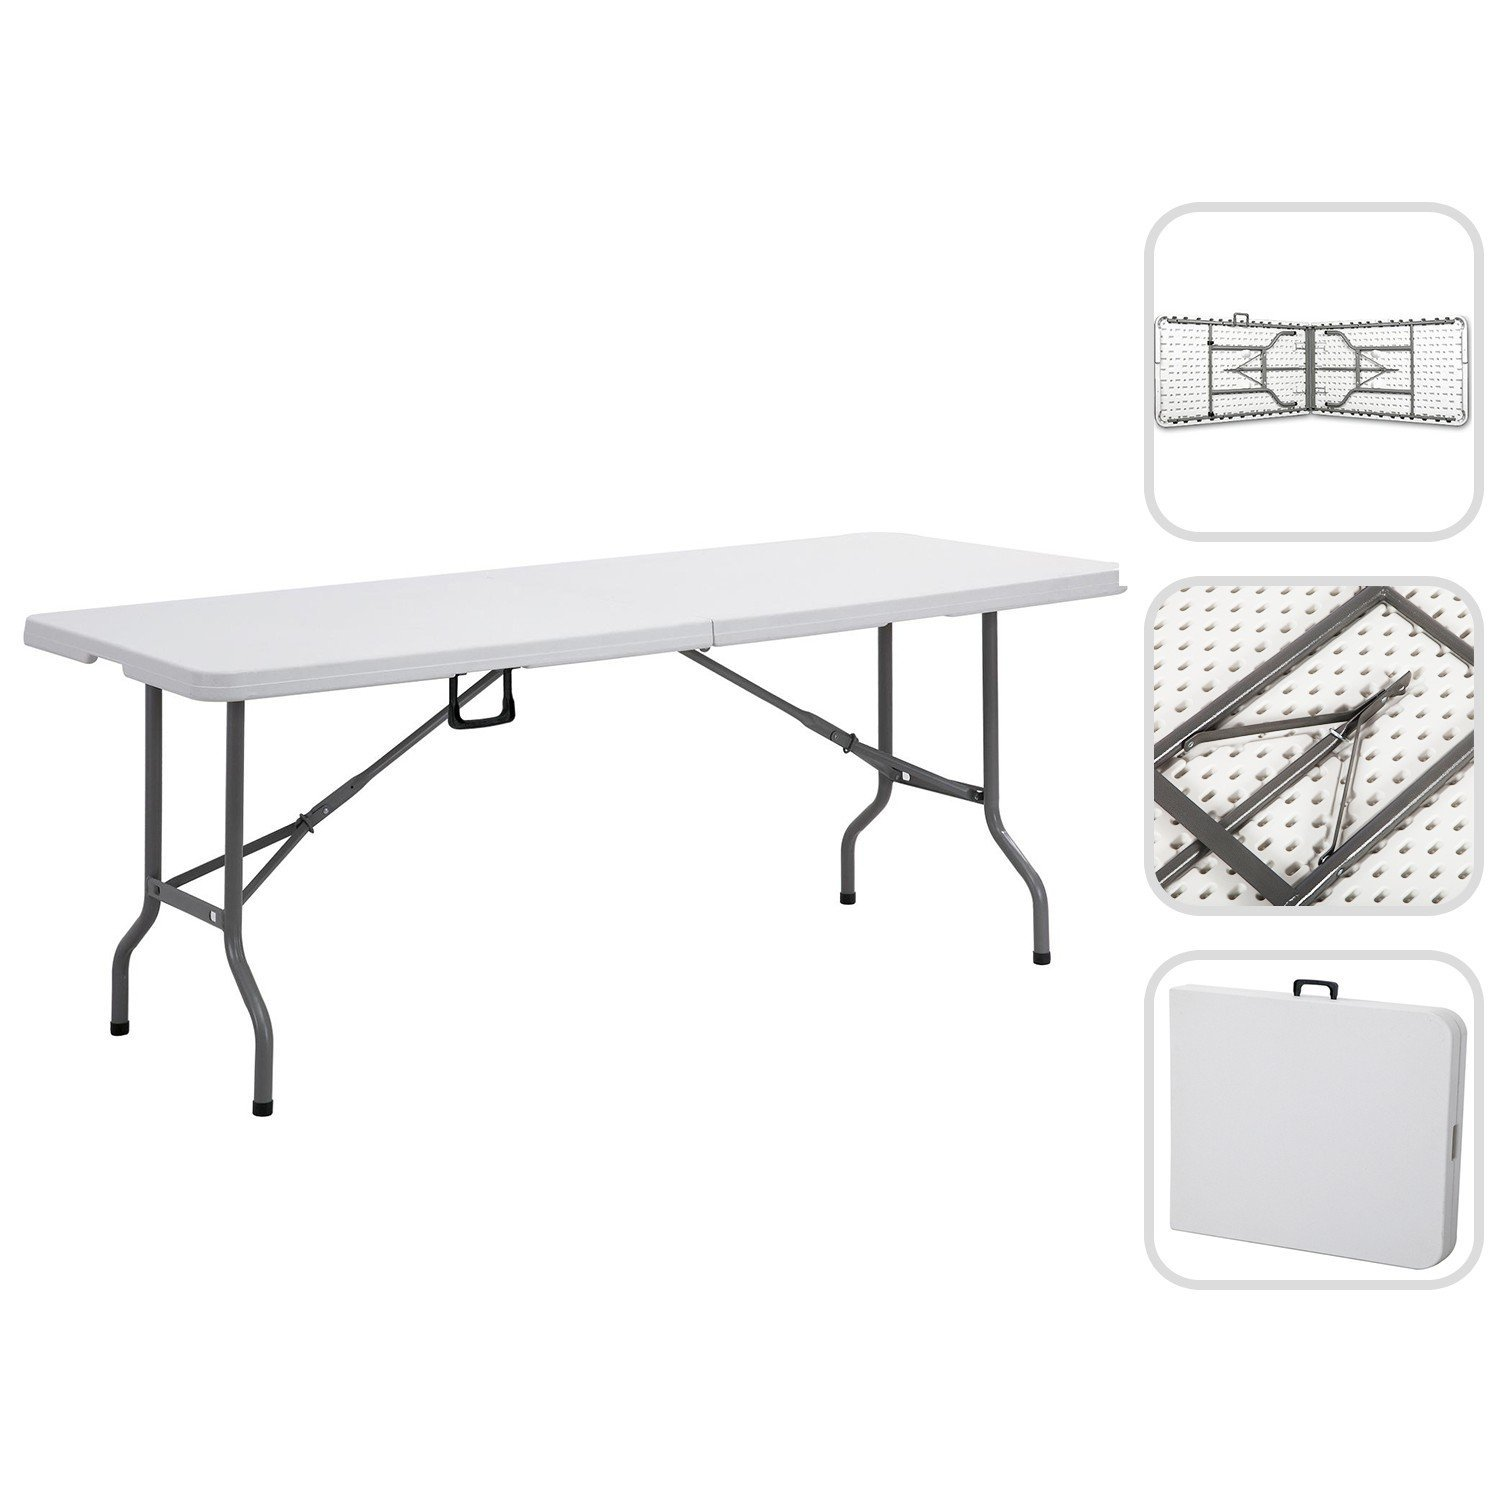 Acheter table pliante de jardin - Table de bridge pliante ...